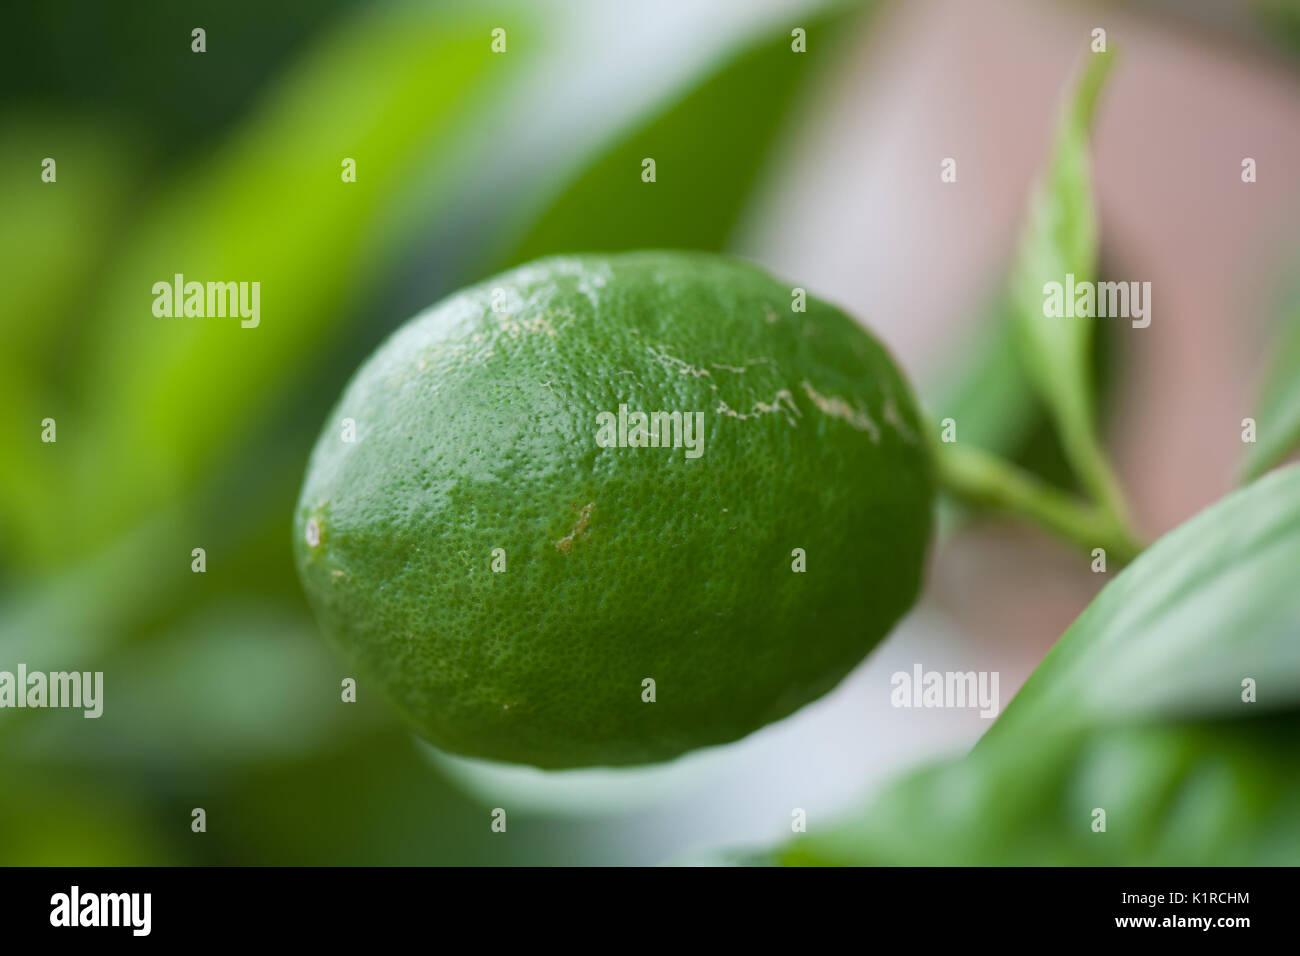 Florida Citrus Stock Photos Amp Florida Citrus Stock Images